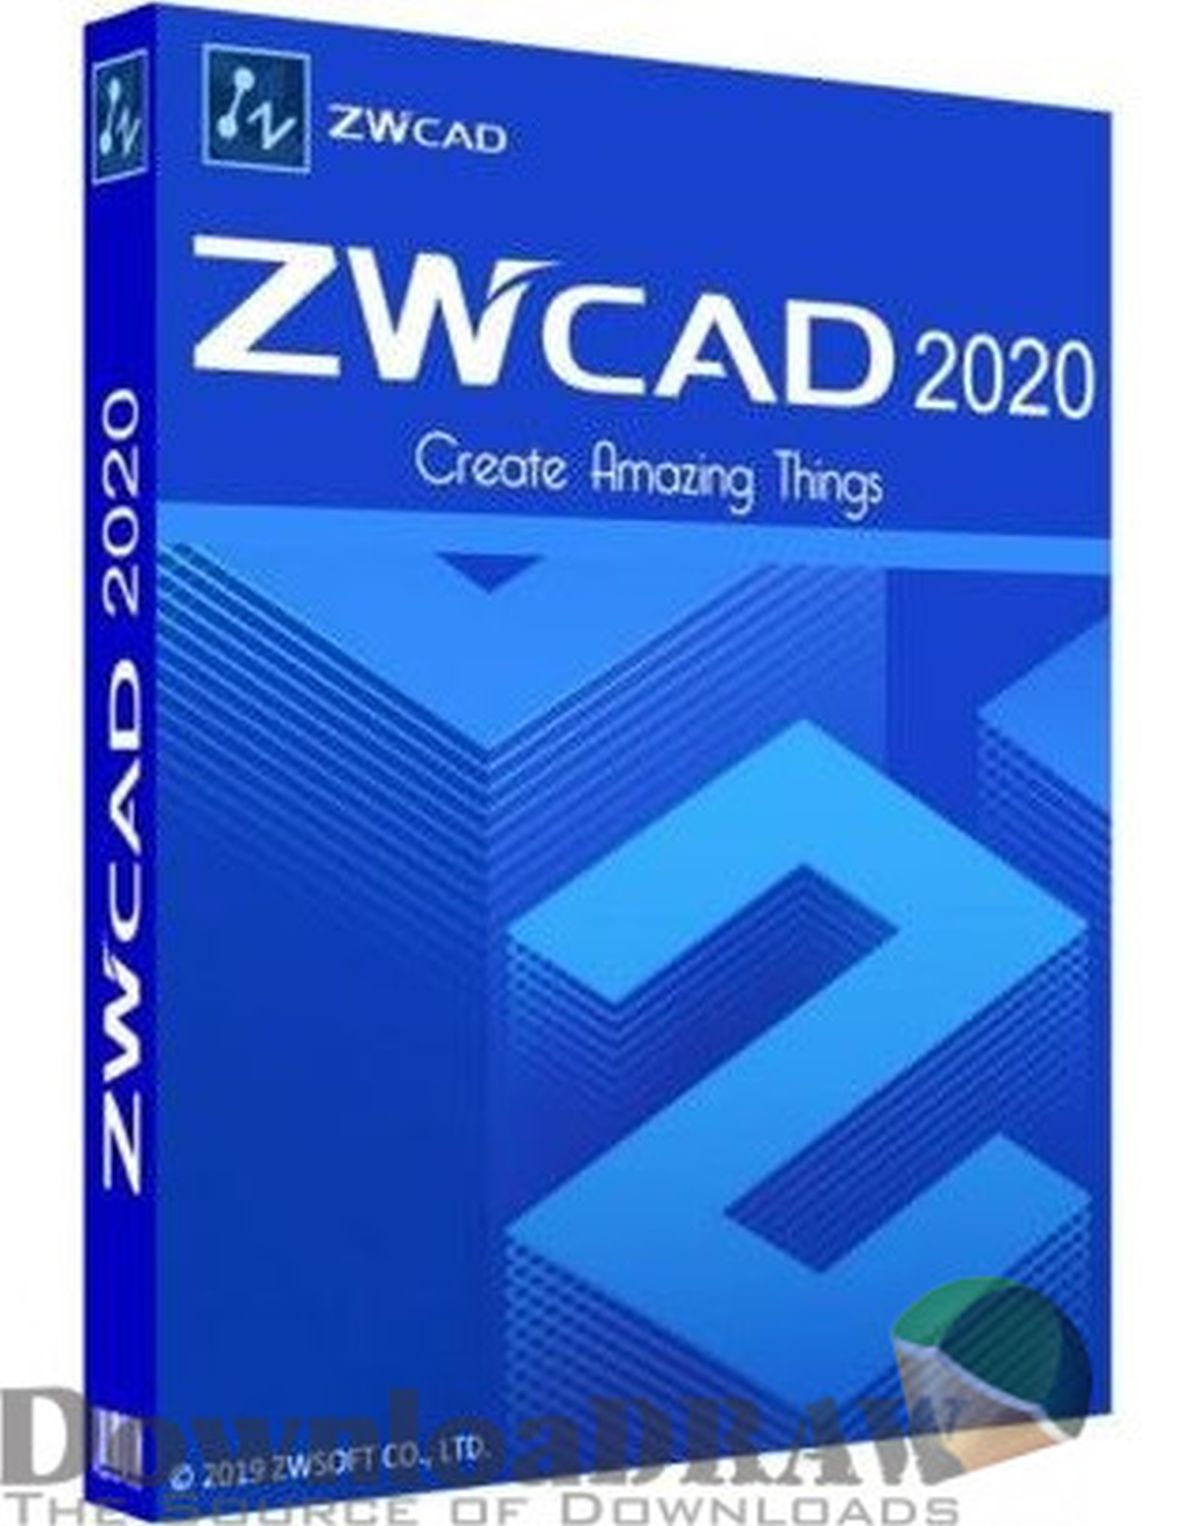 ZWCAD 2020 Professional 3D Software